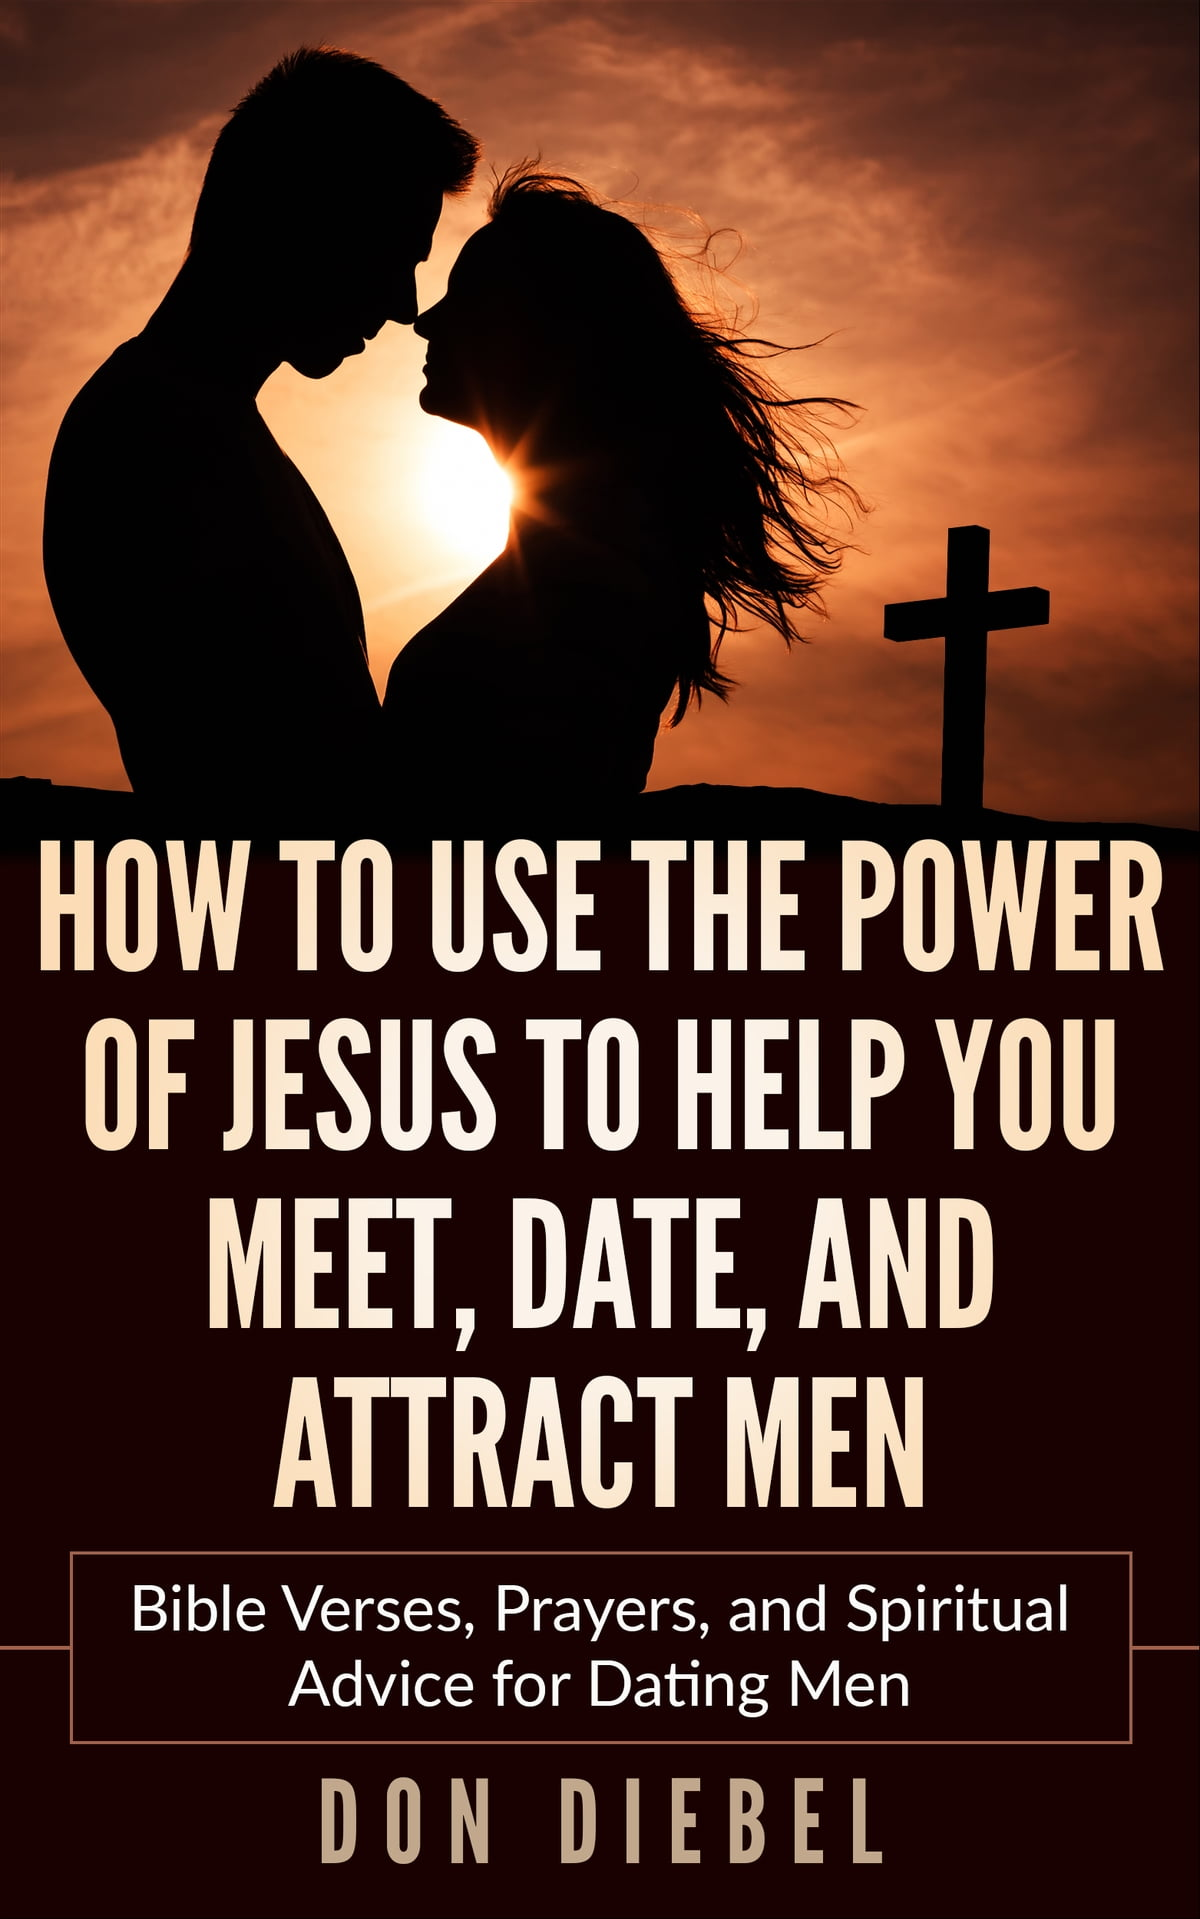 Christian ways on how to approach dating